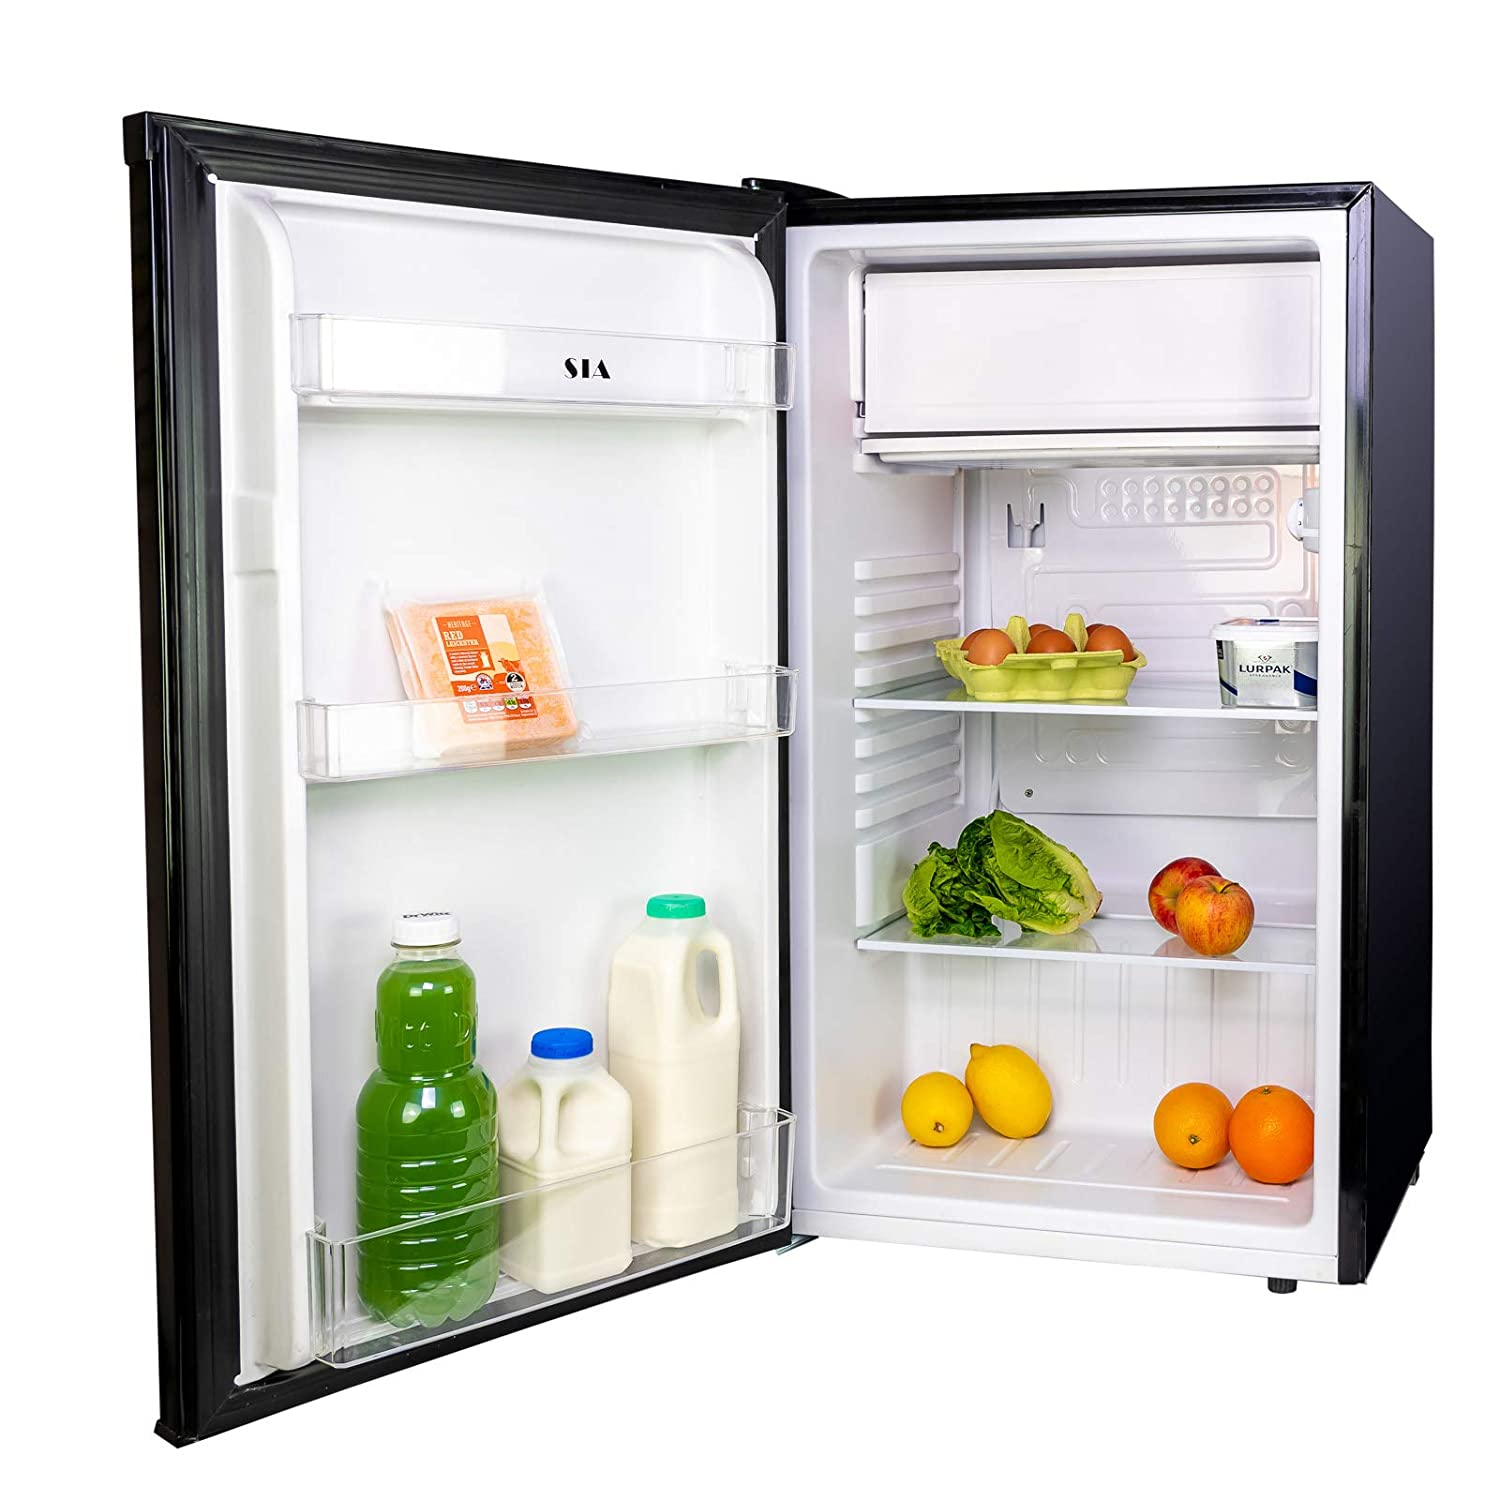 SIA LFSI01BL Black Free Standing Under Counter Fridge With Ice Box A+ Rating